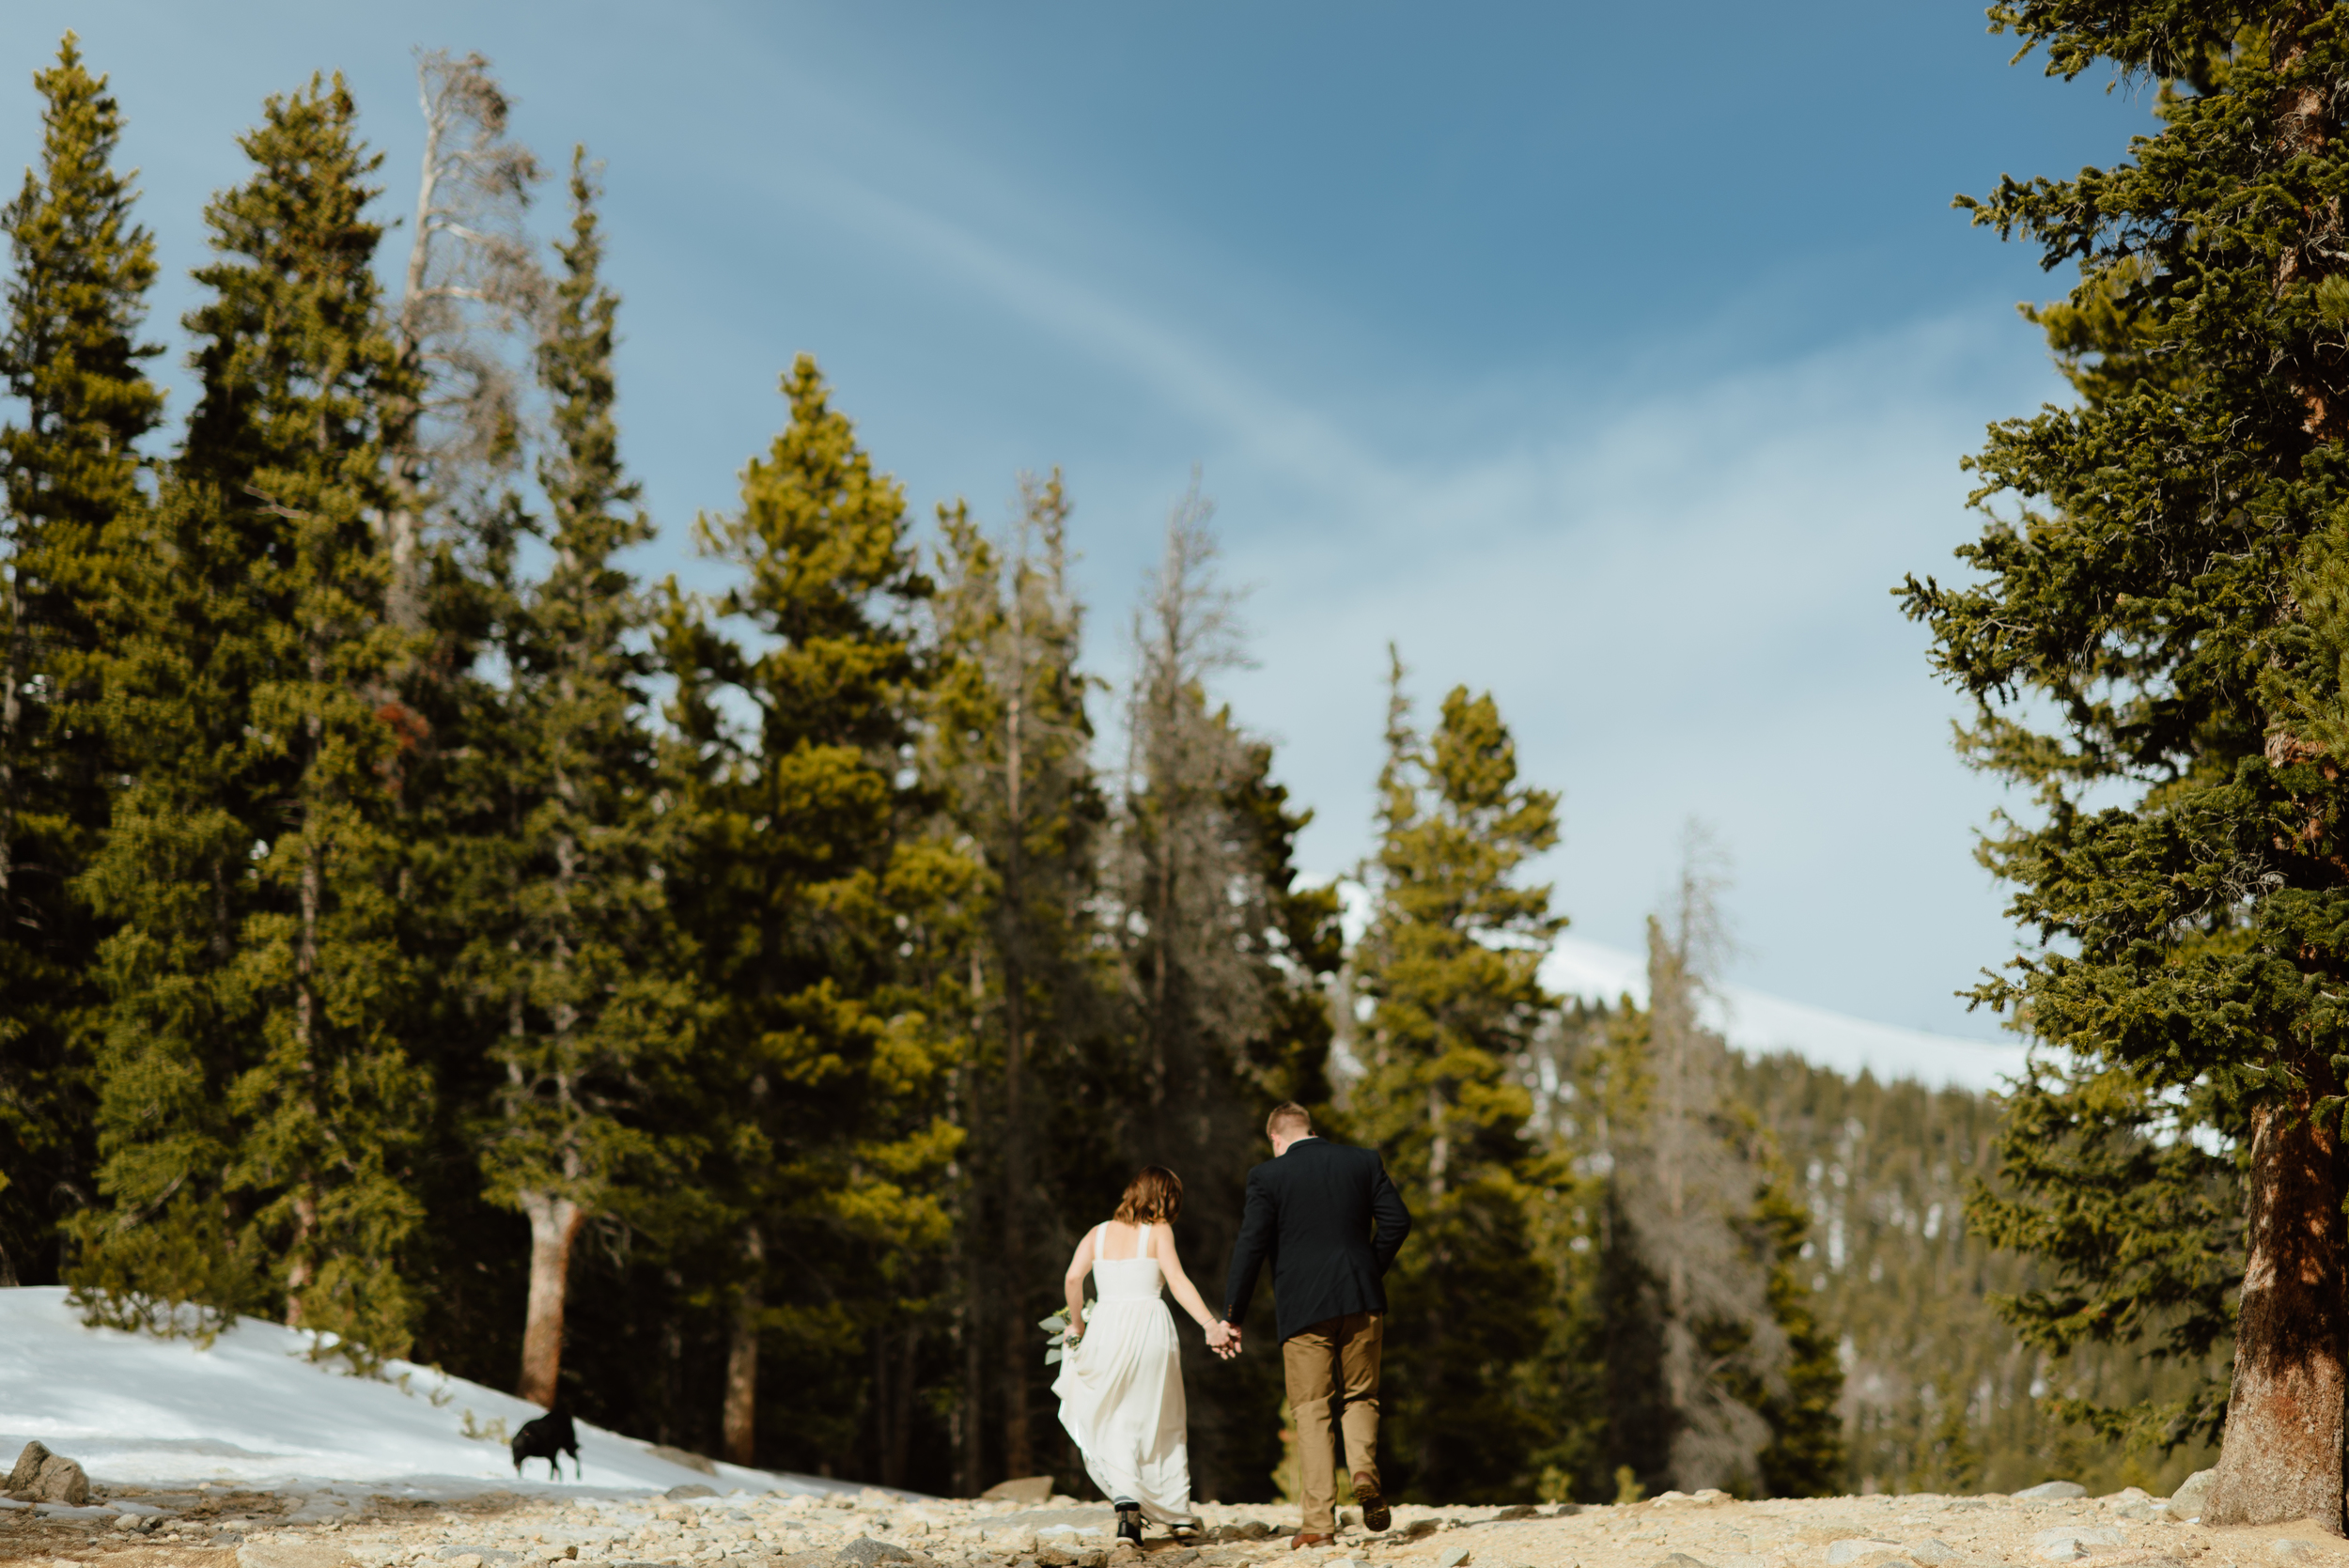 I love the gorgeous, snowy mountain views at St. Mary's Glacier in the winter. What a nice spot in Idaho Springs, Colorado to have my intimate hiking elopement!| Mountain elopement photos by adventure wedding photographer, Maddie Mae.